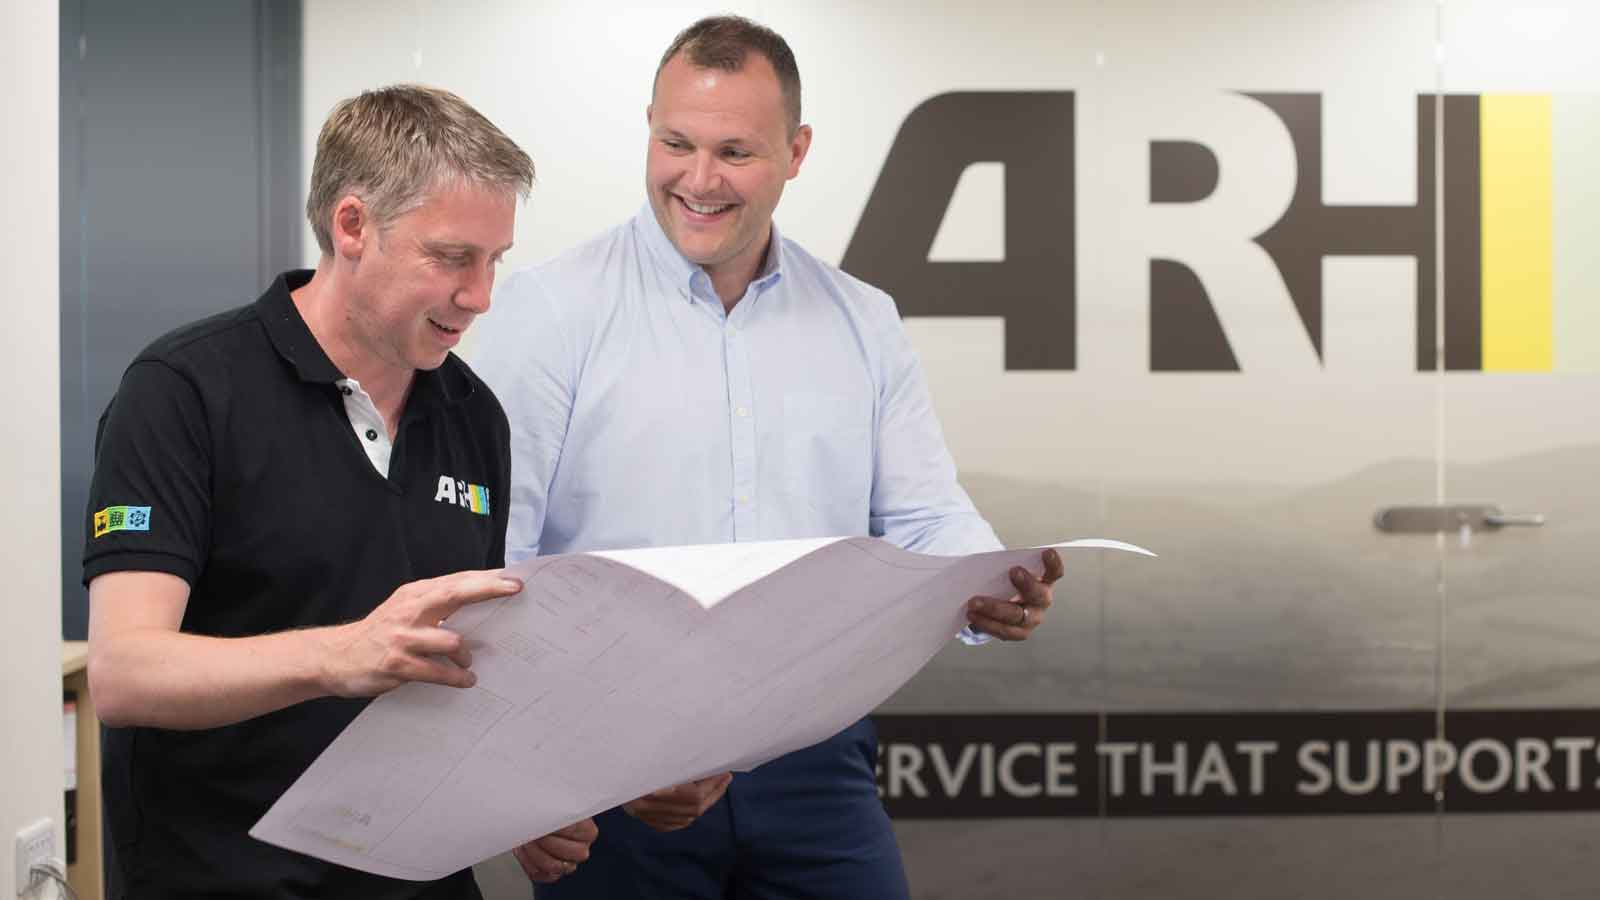 The ARH Group, leading providers of Process Engineering Solutions